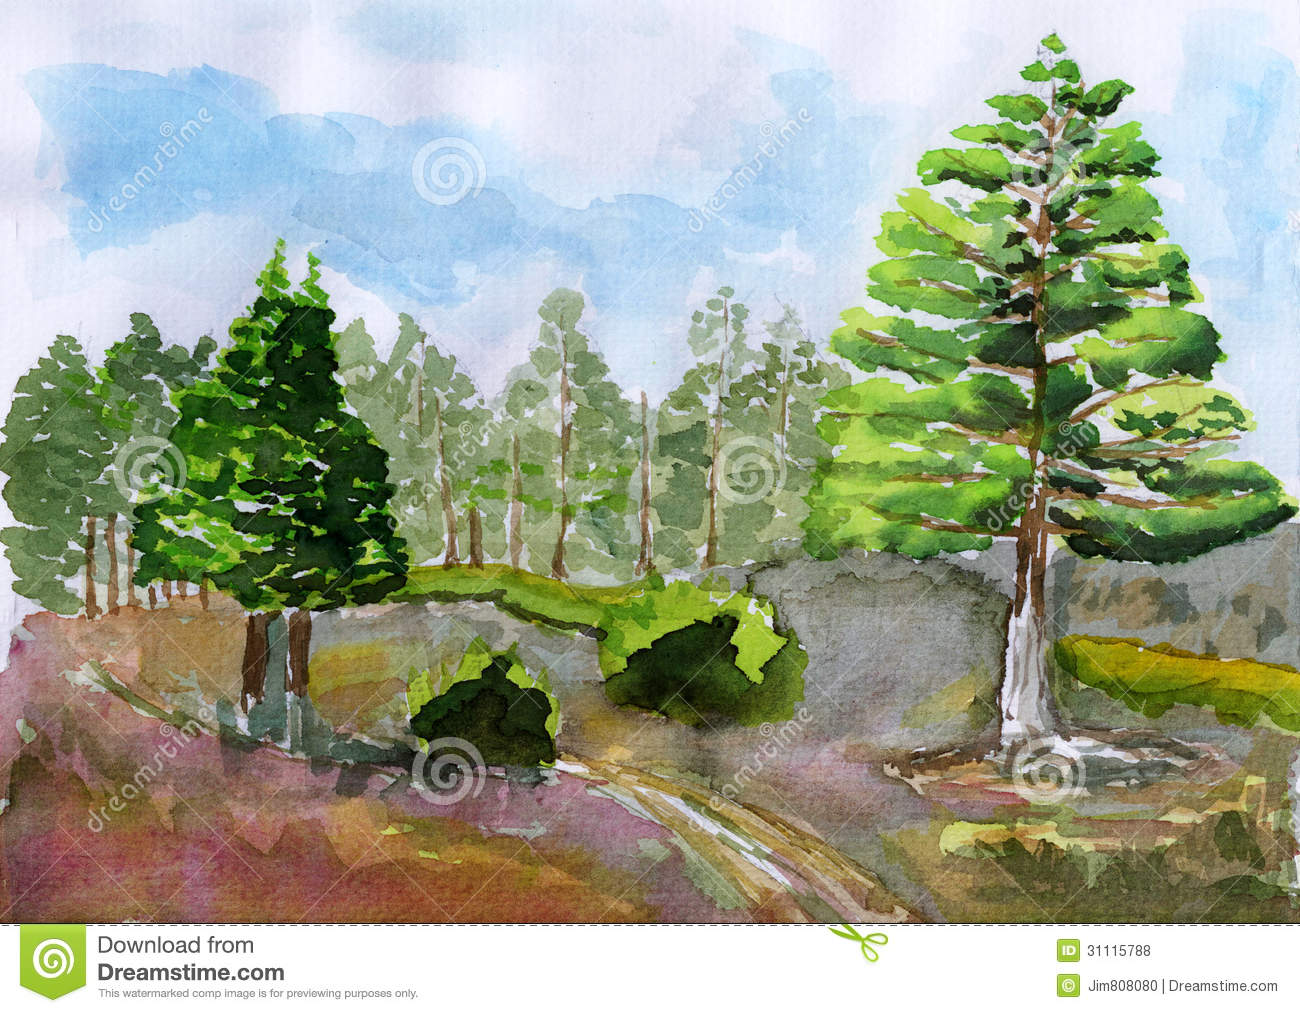 the art of painting watercolor paints essay Free essay: the art of painting dates back to pre-historic times, the finger used as  a paintbrush on the canvas of cave walls when it comes to painting.